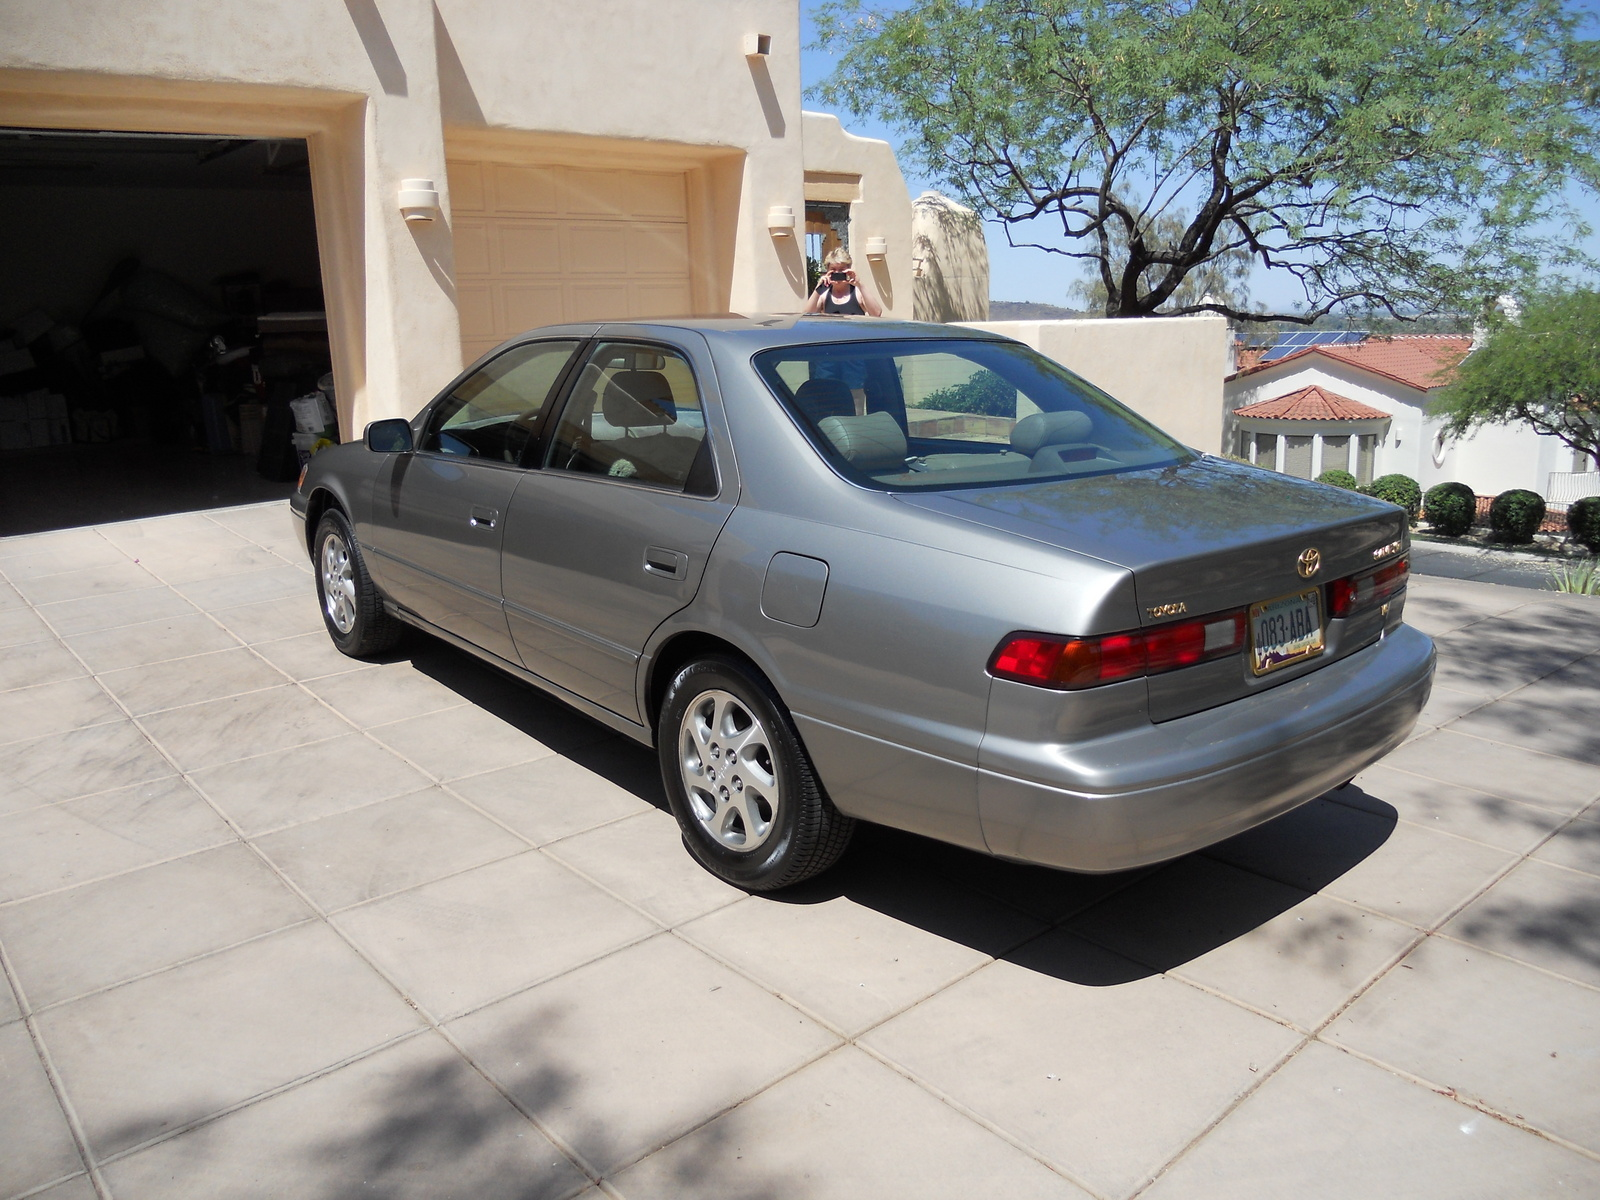 1997 Toyota Camry Pictures Cargurus